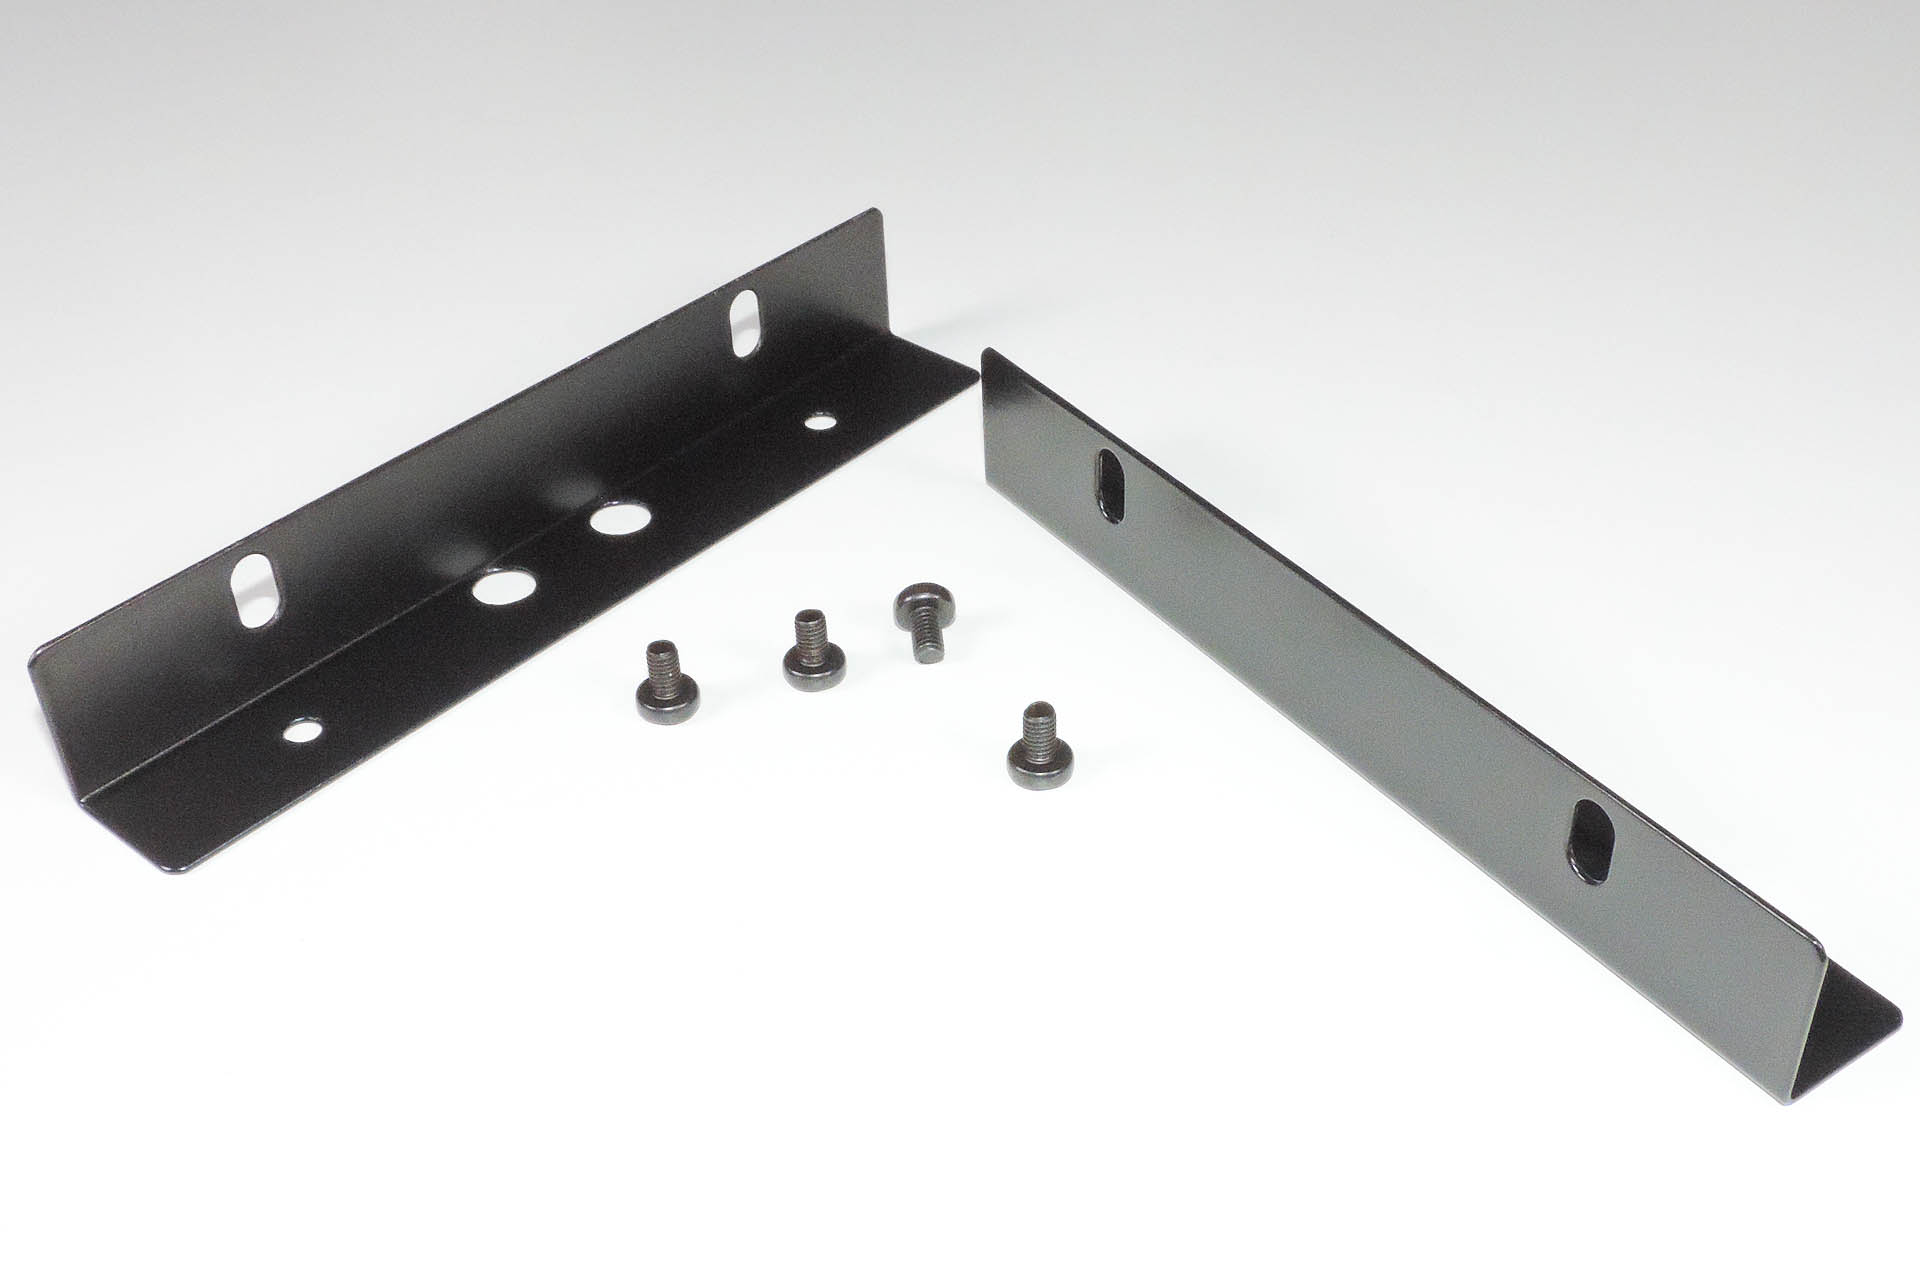 RE-MPG-80 replacement rack ears kit